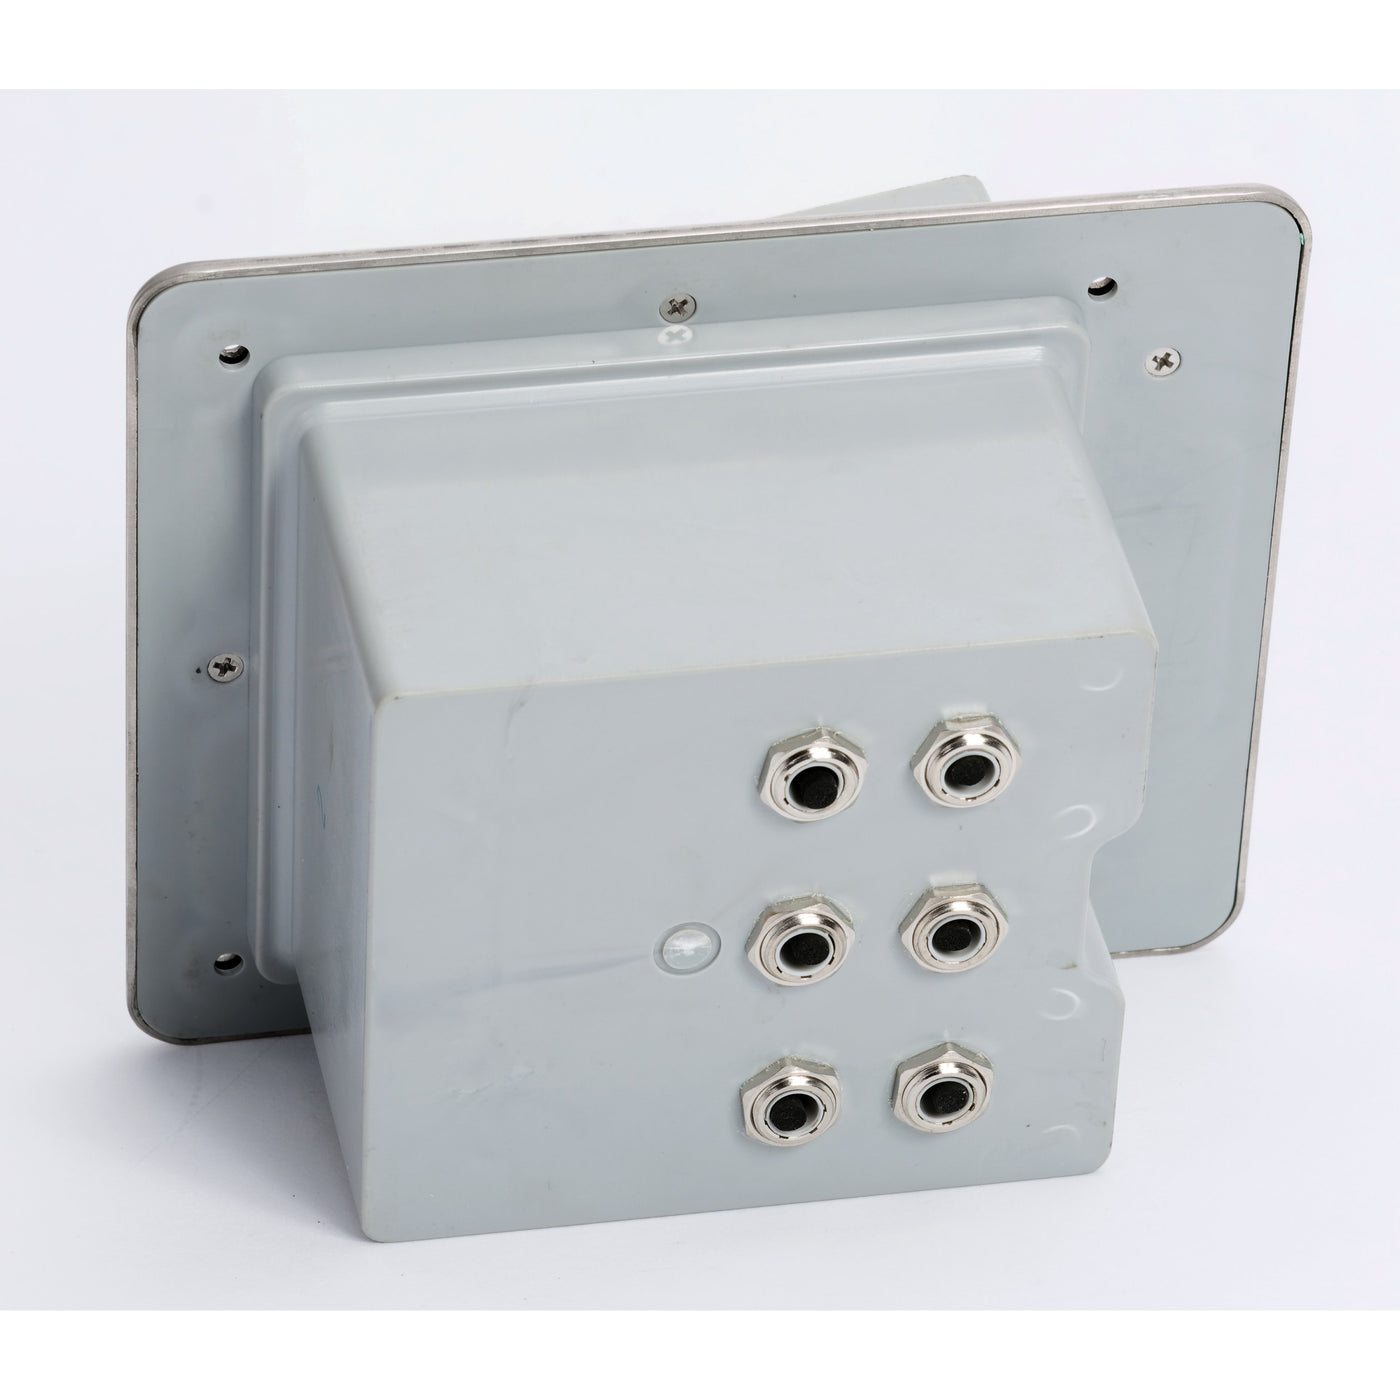 Lew Electric Ob 1 Sp 6port Outdoor 6 Port Pop Up Push Button Box Waterproof Popped Ground Stainless Steel Empty Keystone Jacks